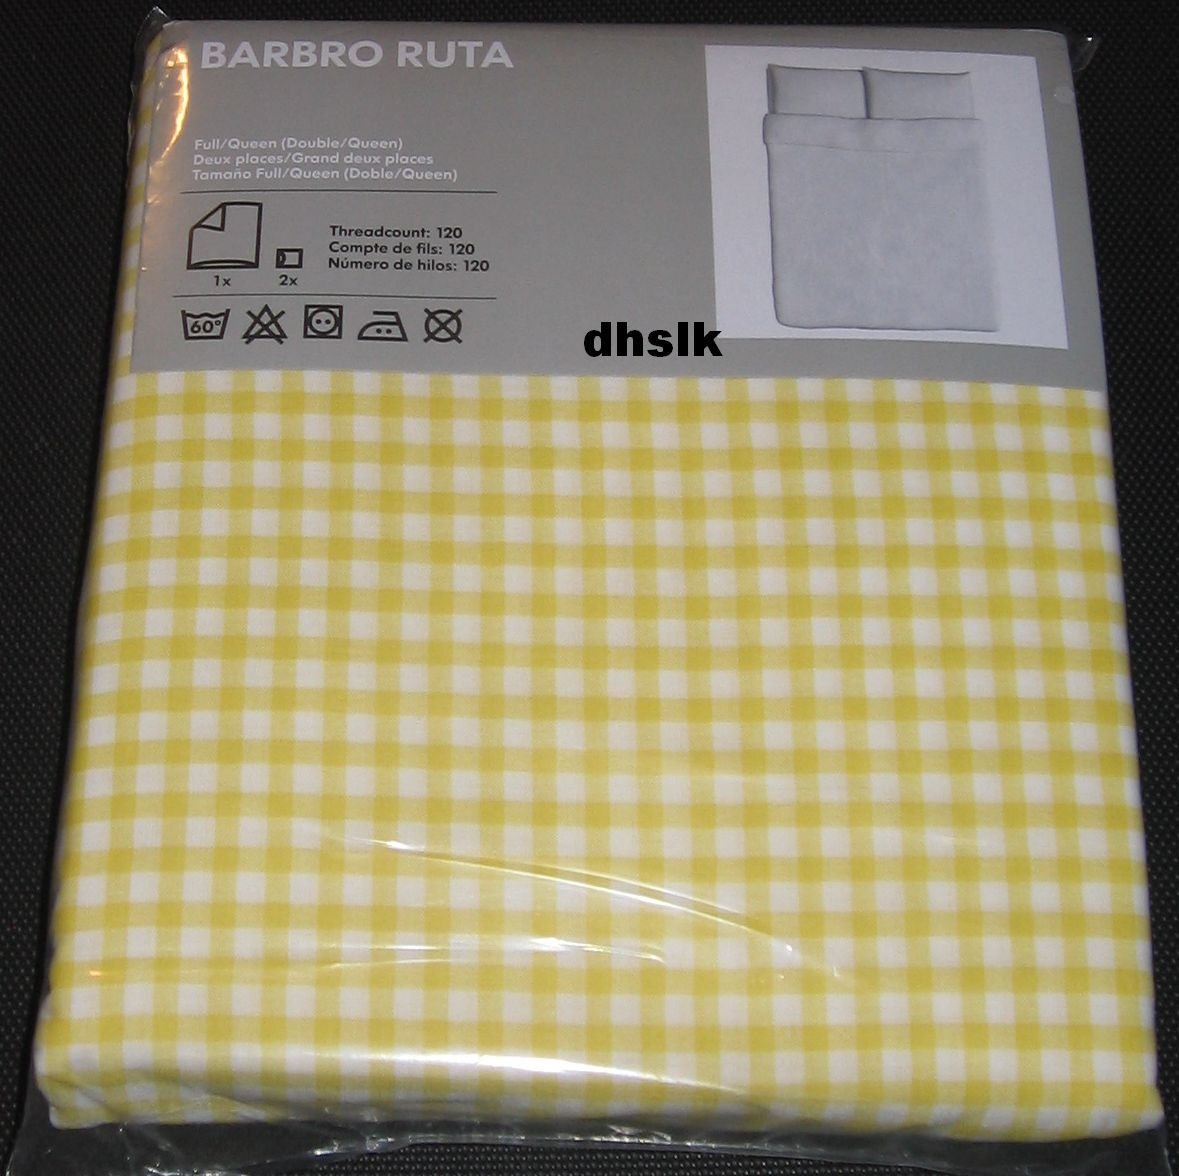 Ikea Barbro Ruta Full Queen Duvet Cover Pillowcases Set